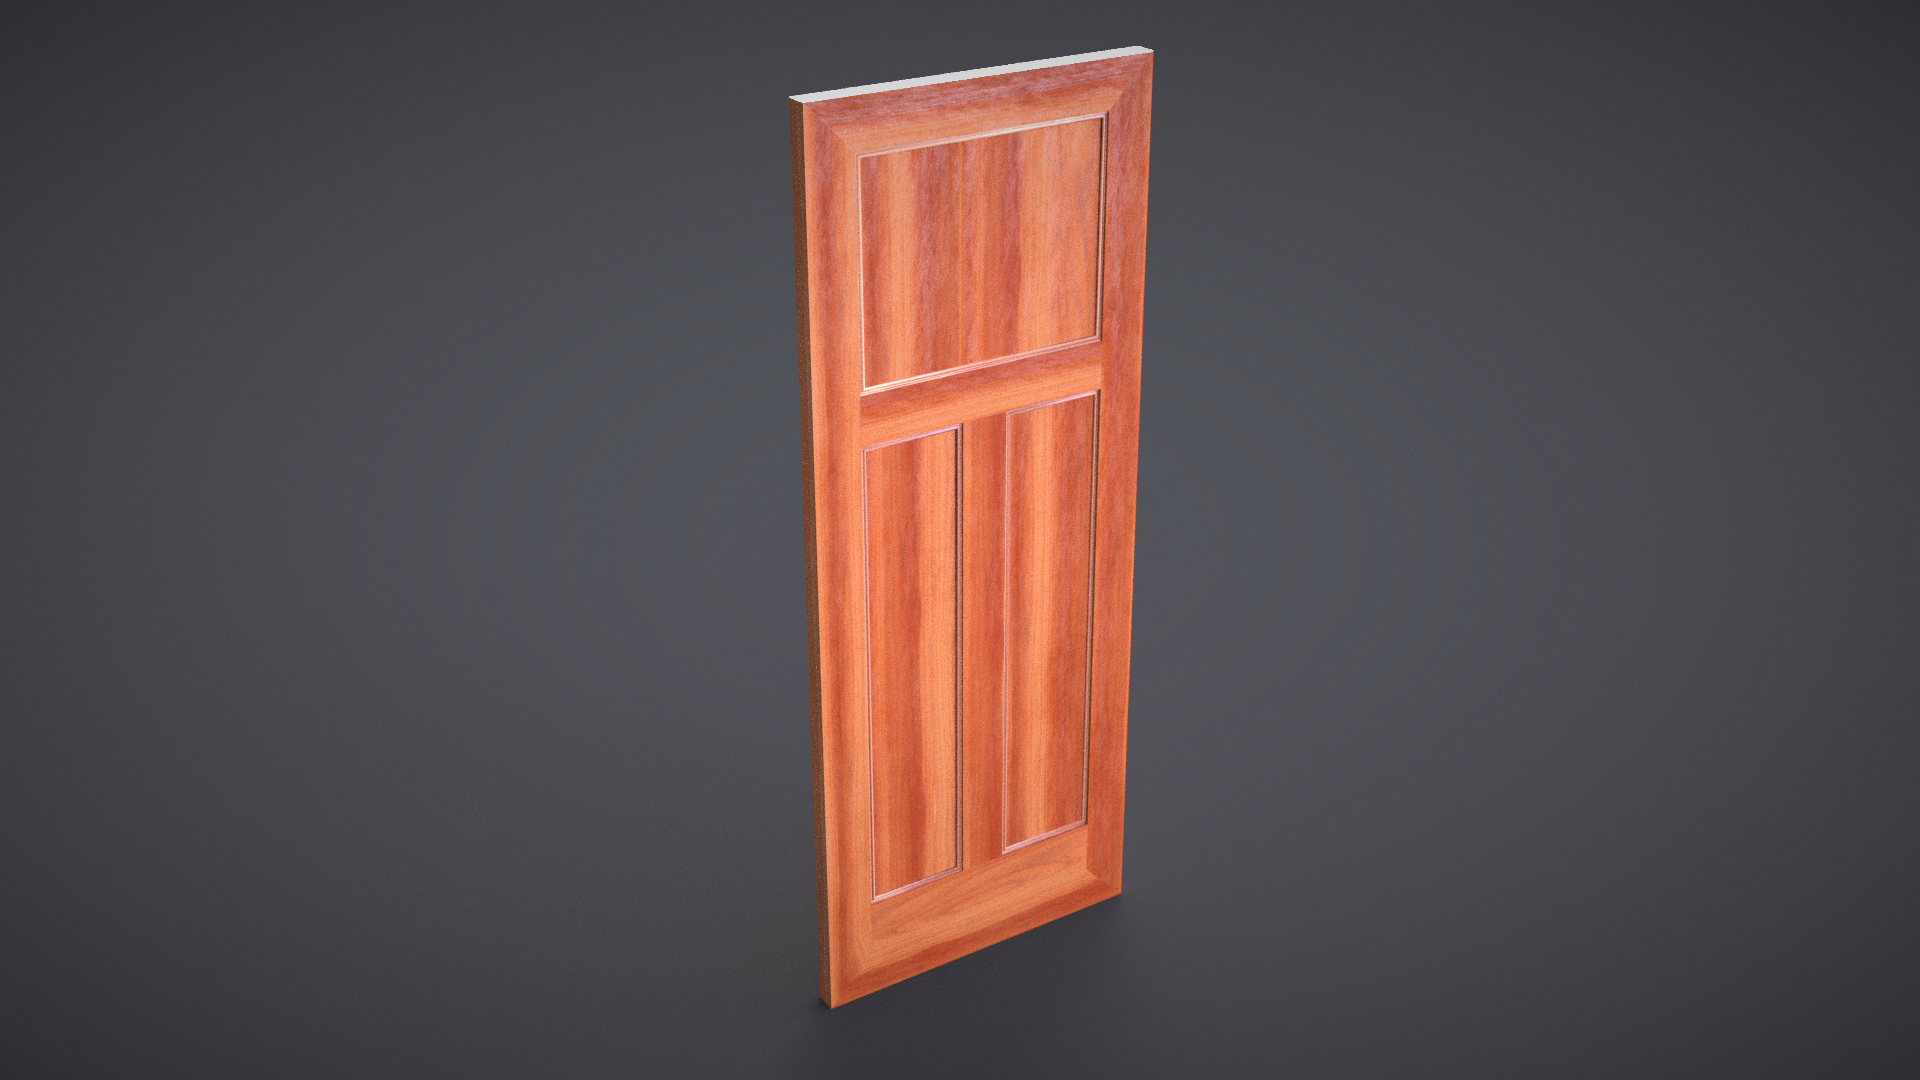 Merveilleux This Wood Door Is Perfect For Interior Design With Realistic Wood Grain.